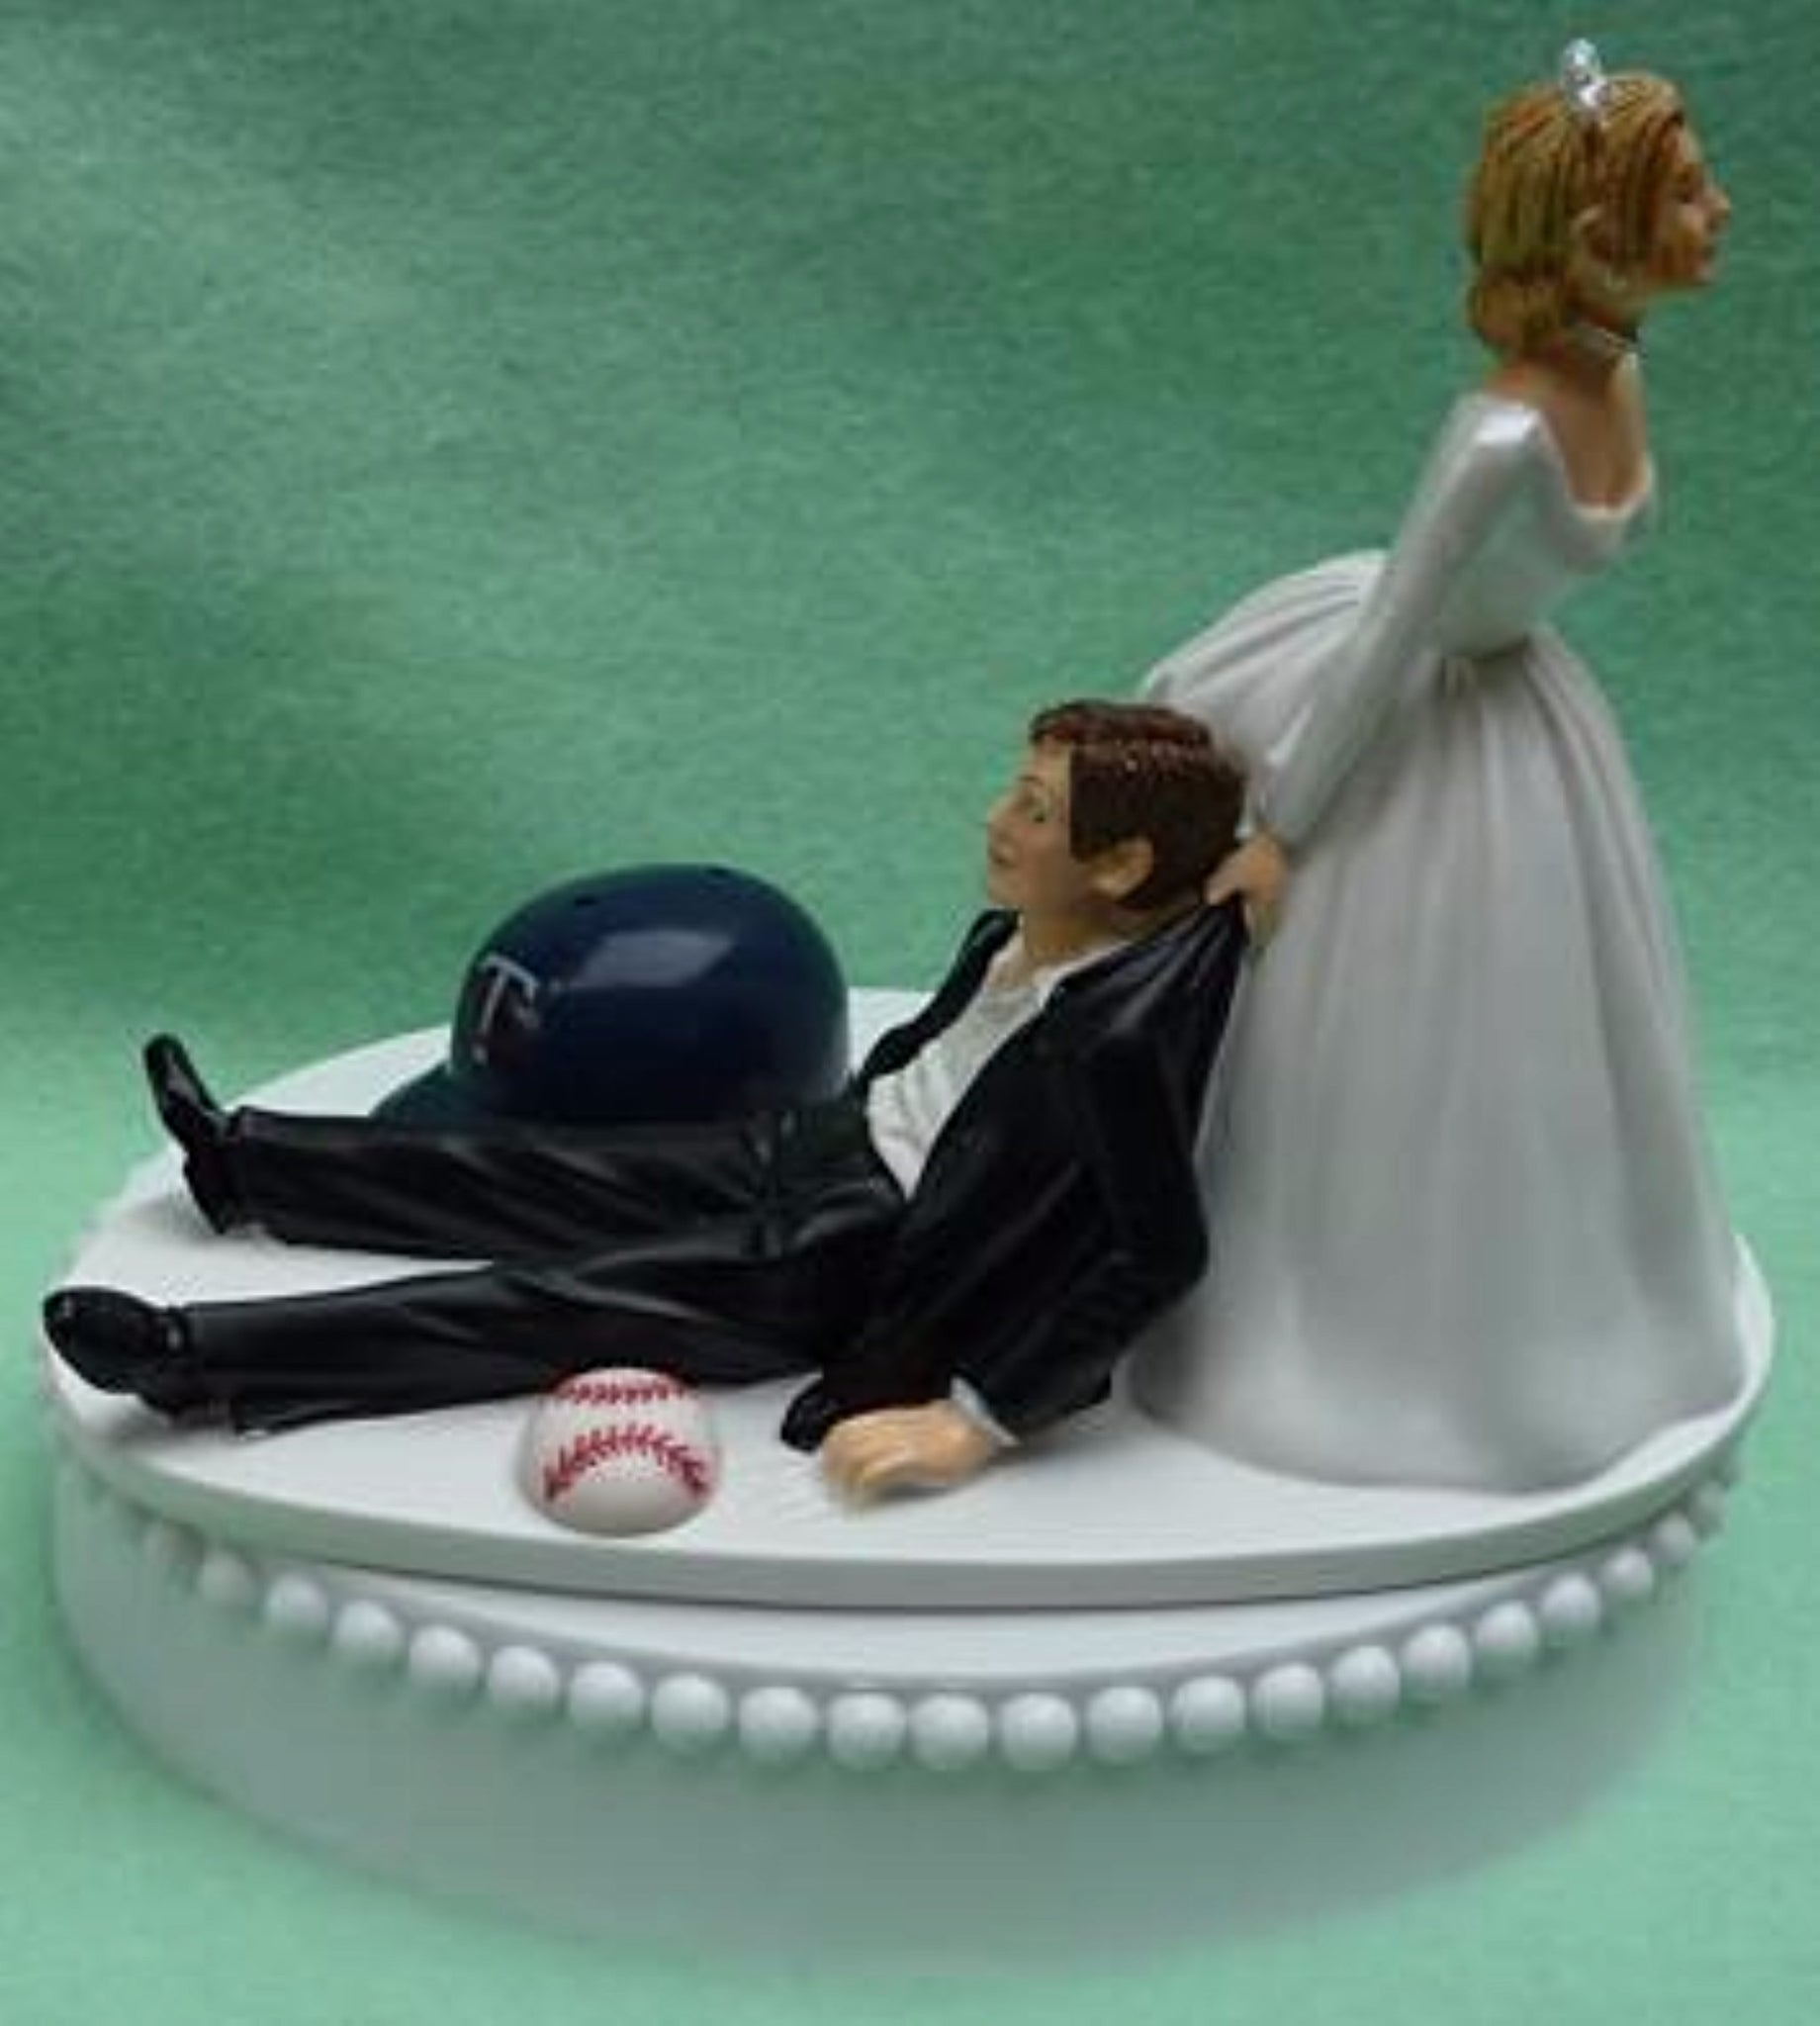 Minnesota Twins wedding cake topper baseball sports fans fun MLB humorous bride dragging groom reception gift idea item